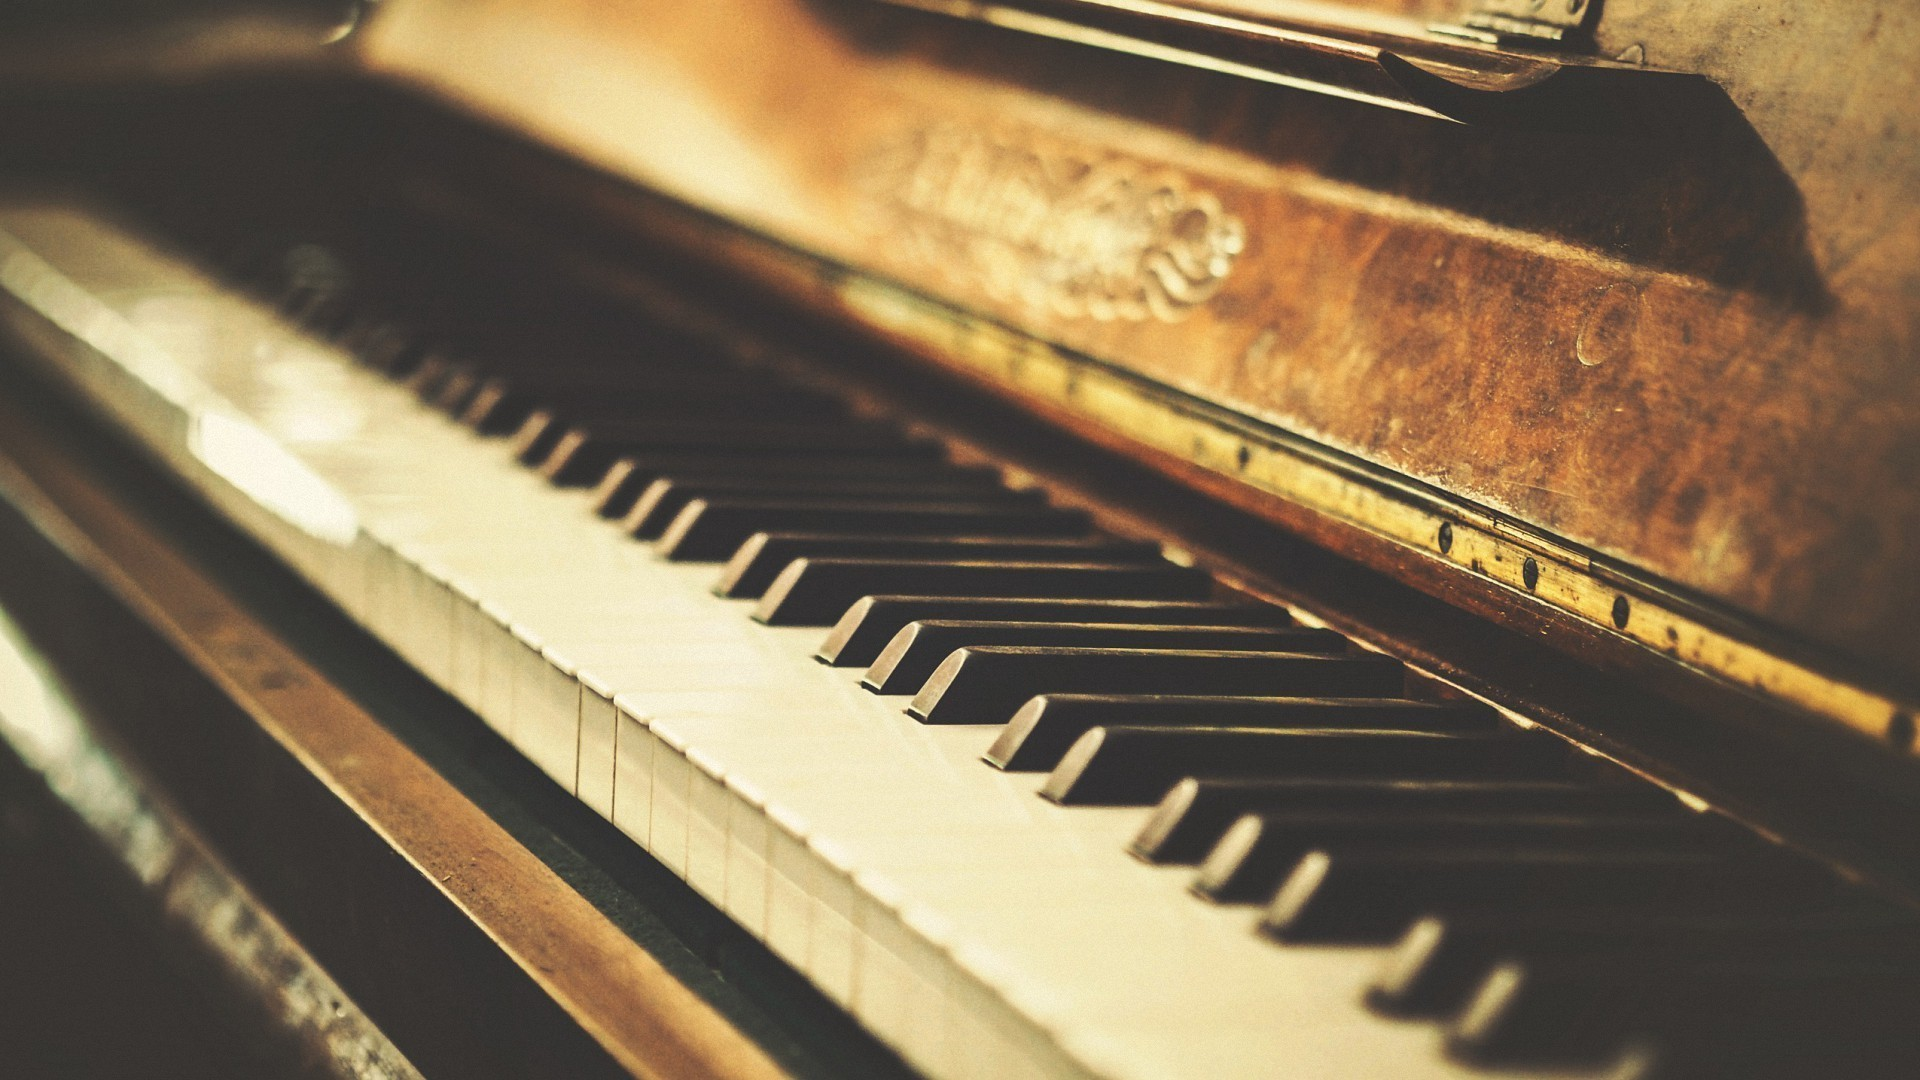 1920x1080  Piano Retro Music Hd Wallpapers. 0 · Download · Res: 1920x1200 ...